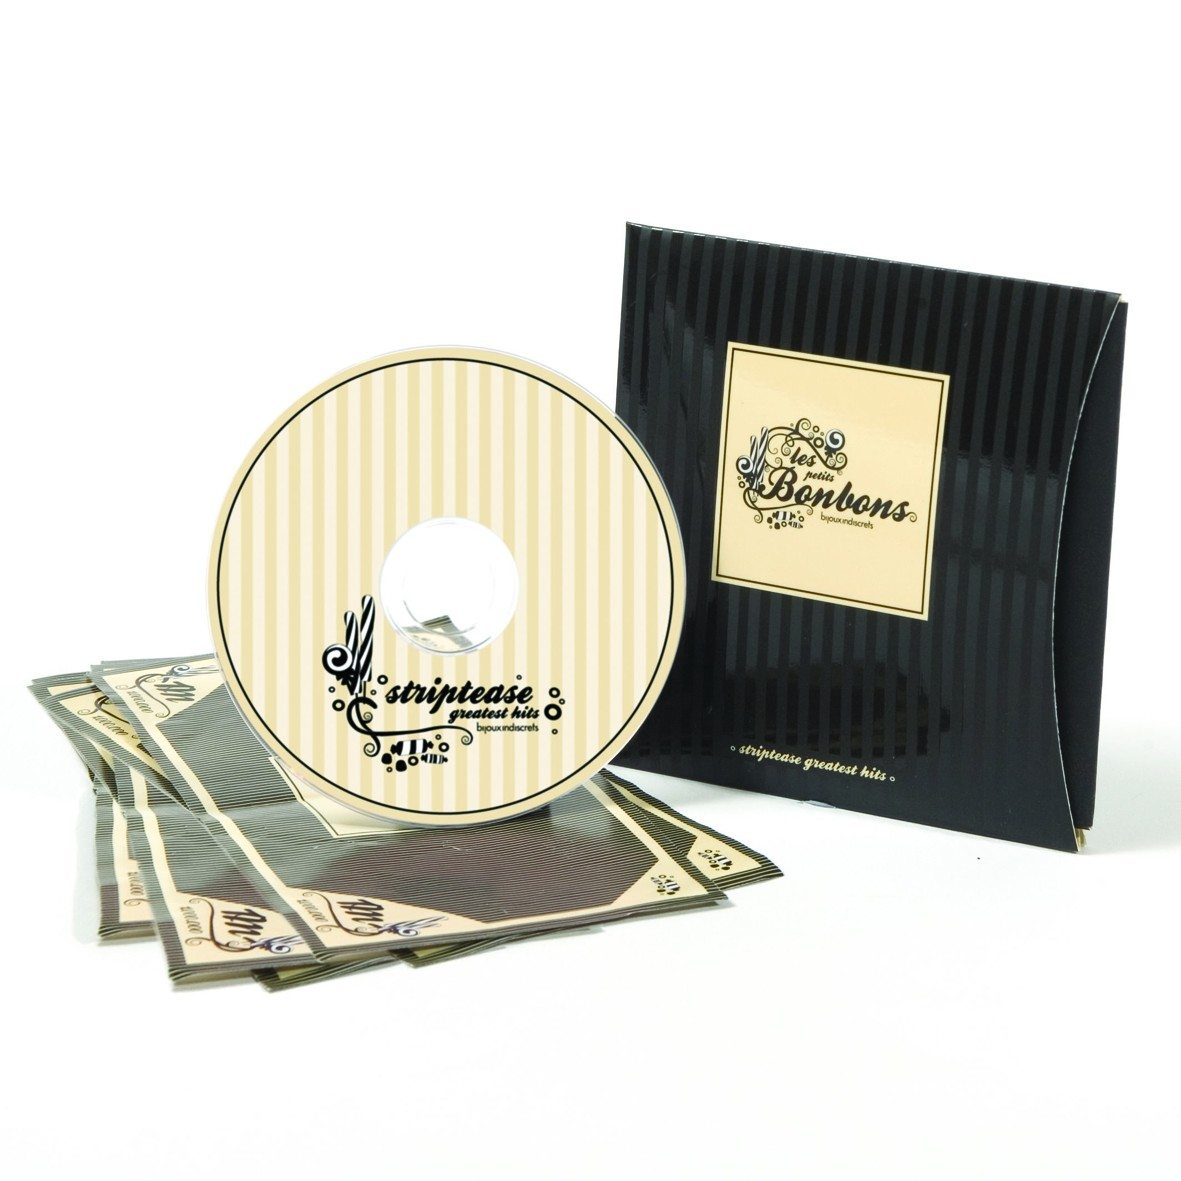 Coffret Hits de striptease